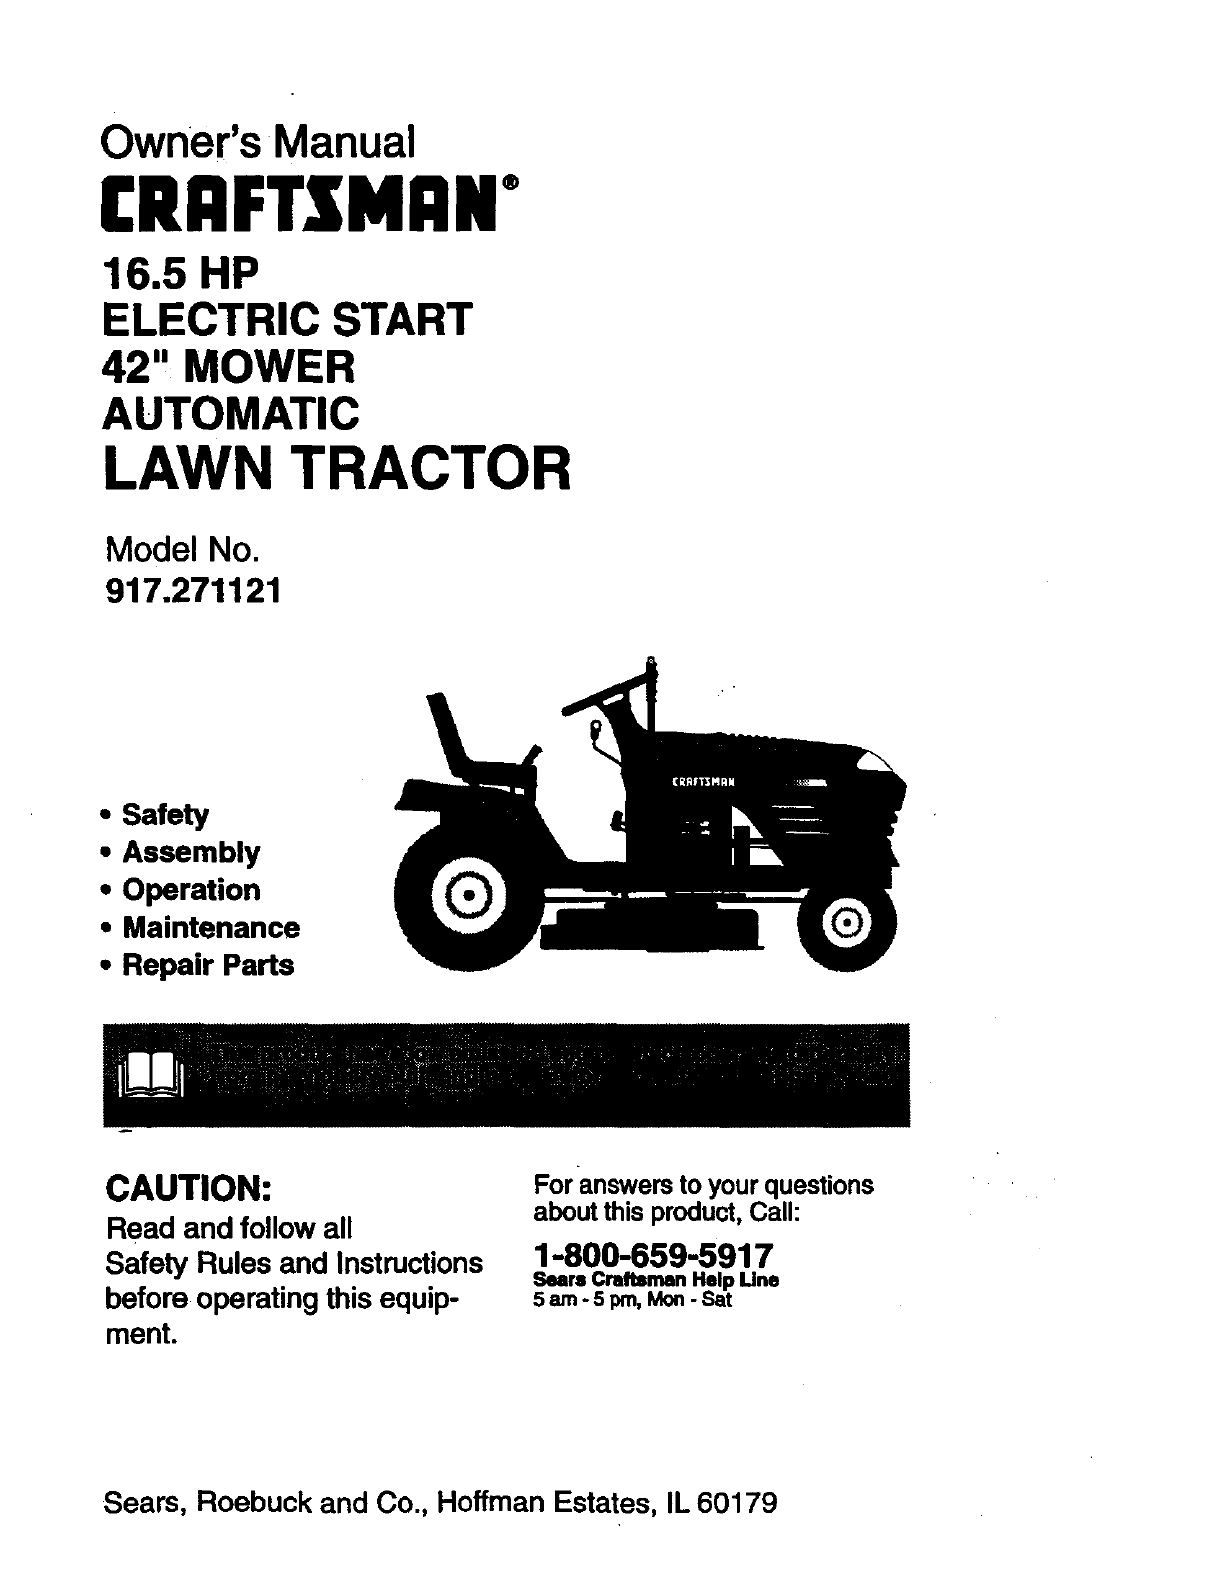 Craftsman 917271121 User Manual 16.5 HP ELECTRIC START